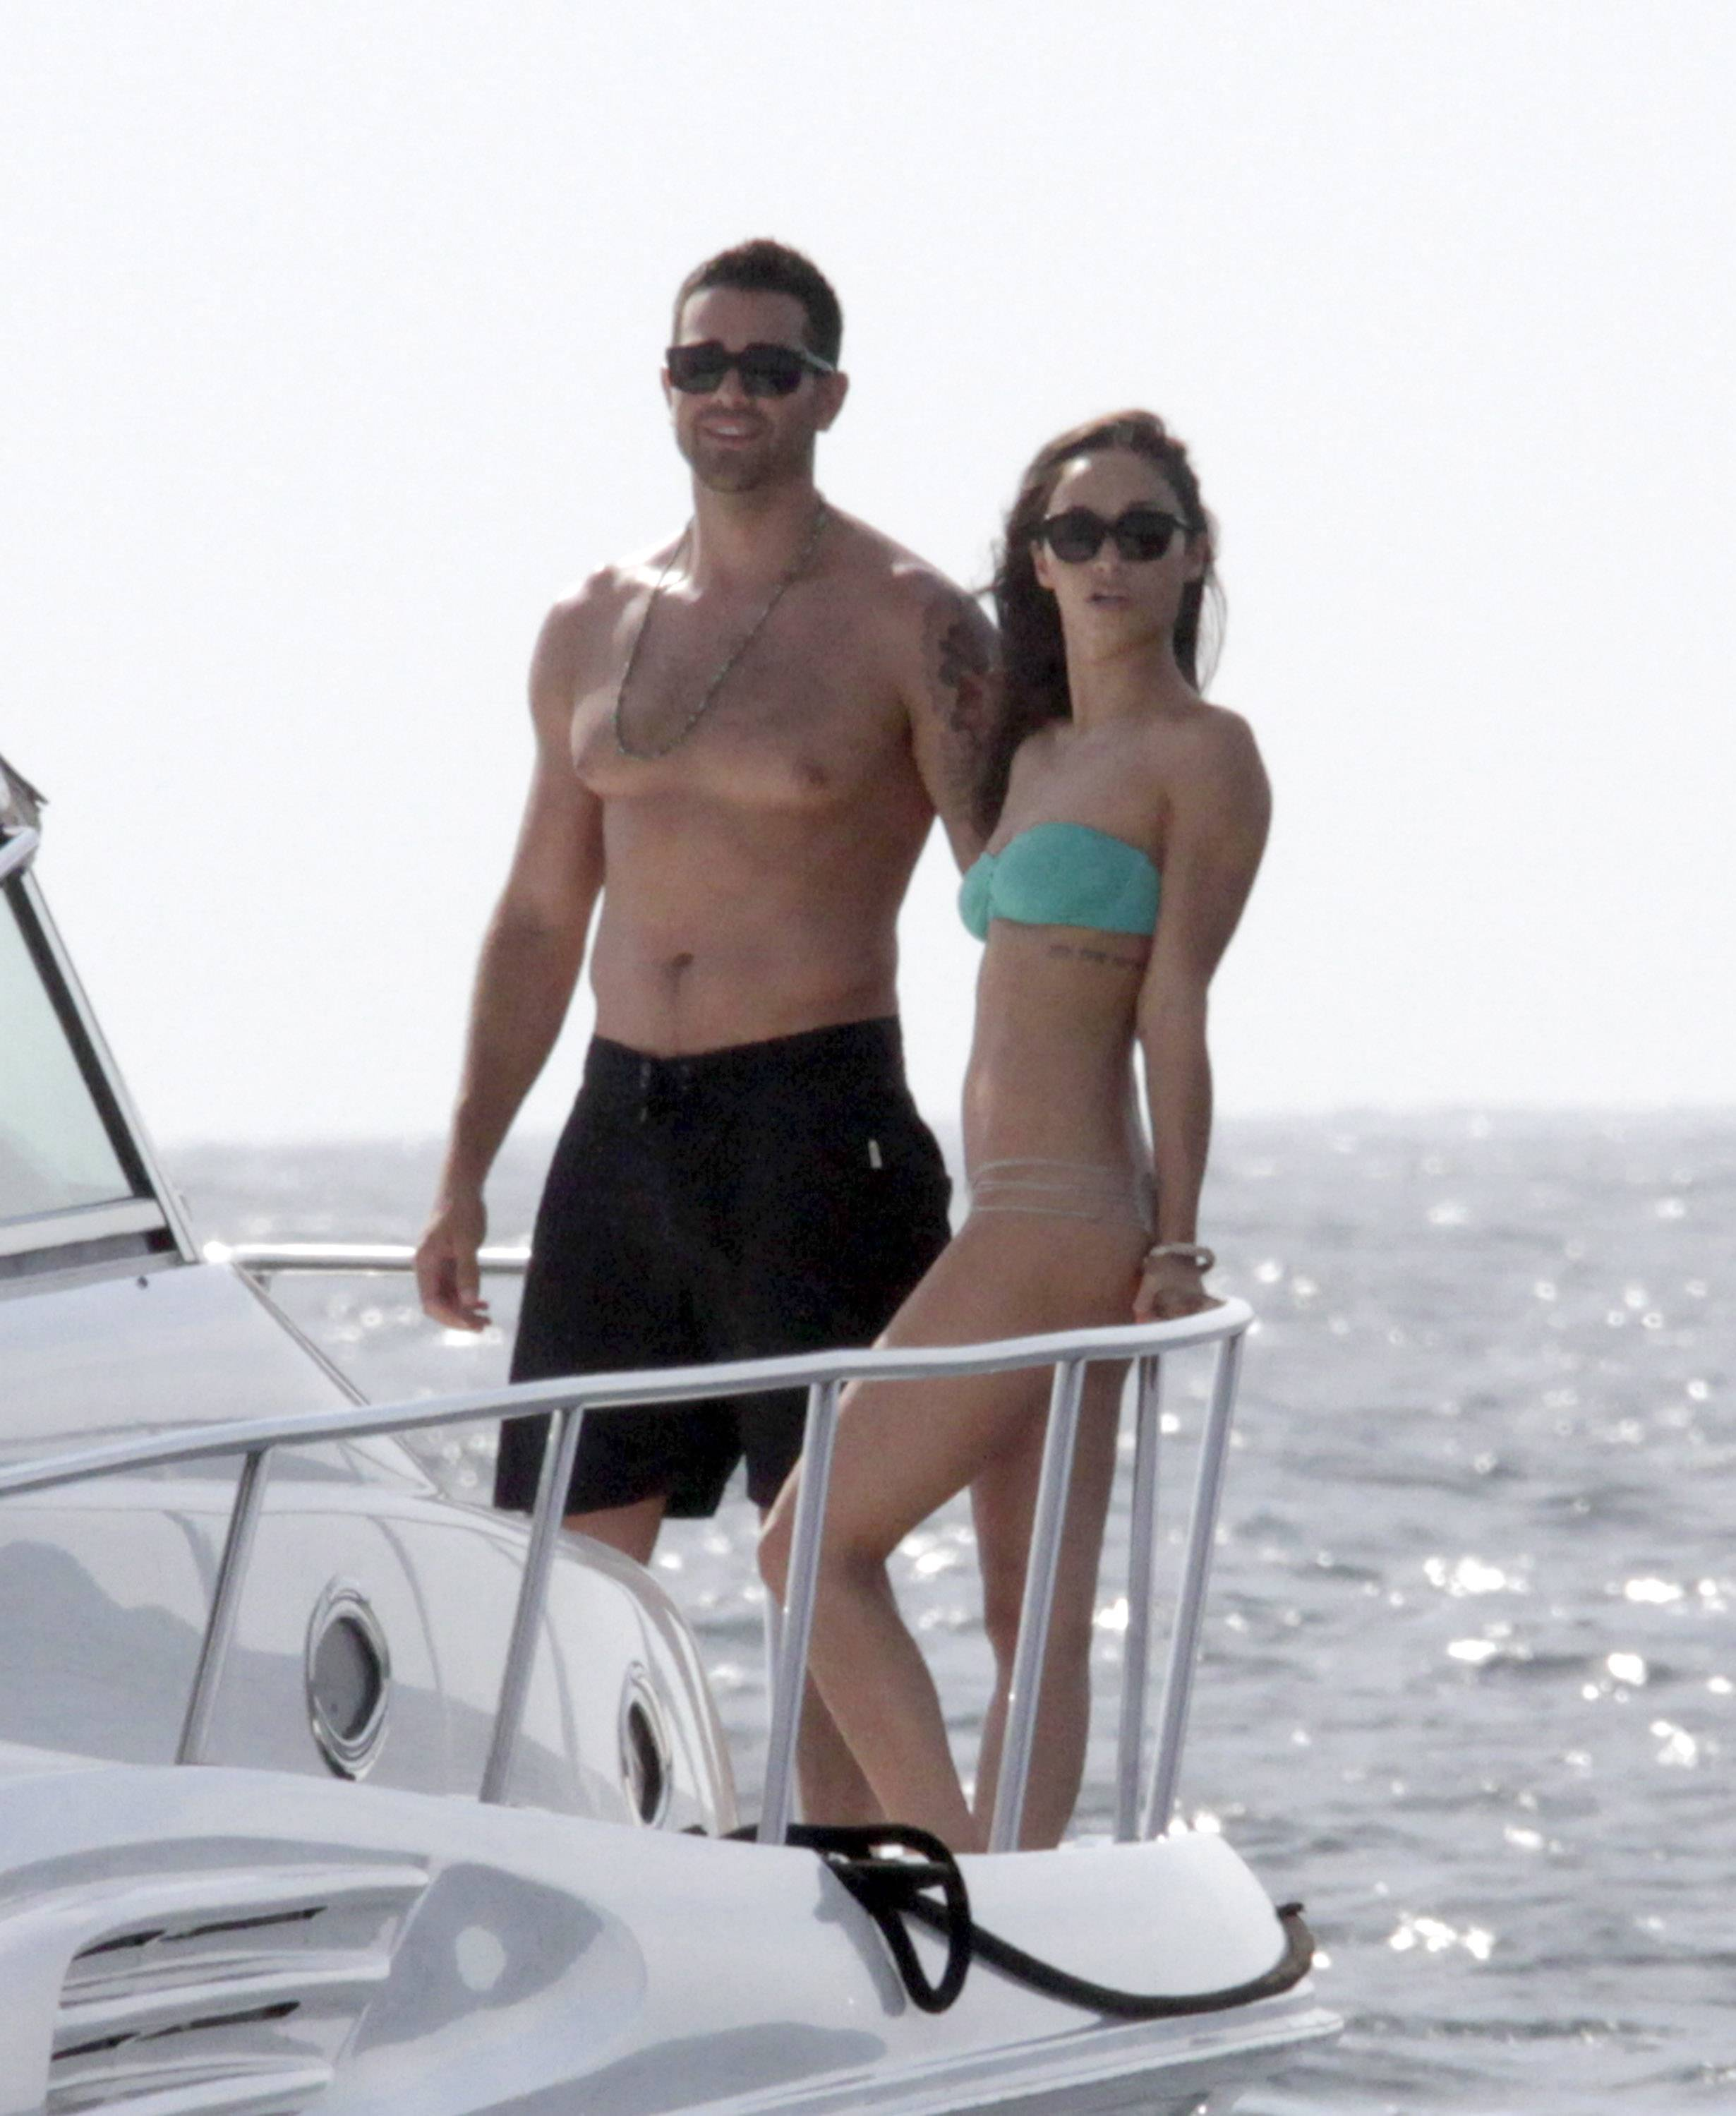 Dallas Actor Jesse Metcalfe And Fiance Actress Cara Santana Relax On A Boat During Vacation In Cabo San Lucas Mexico